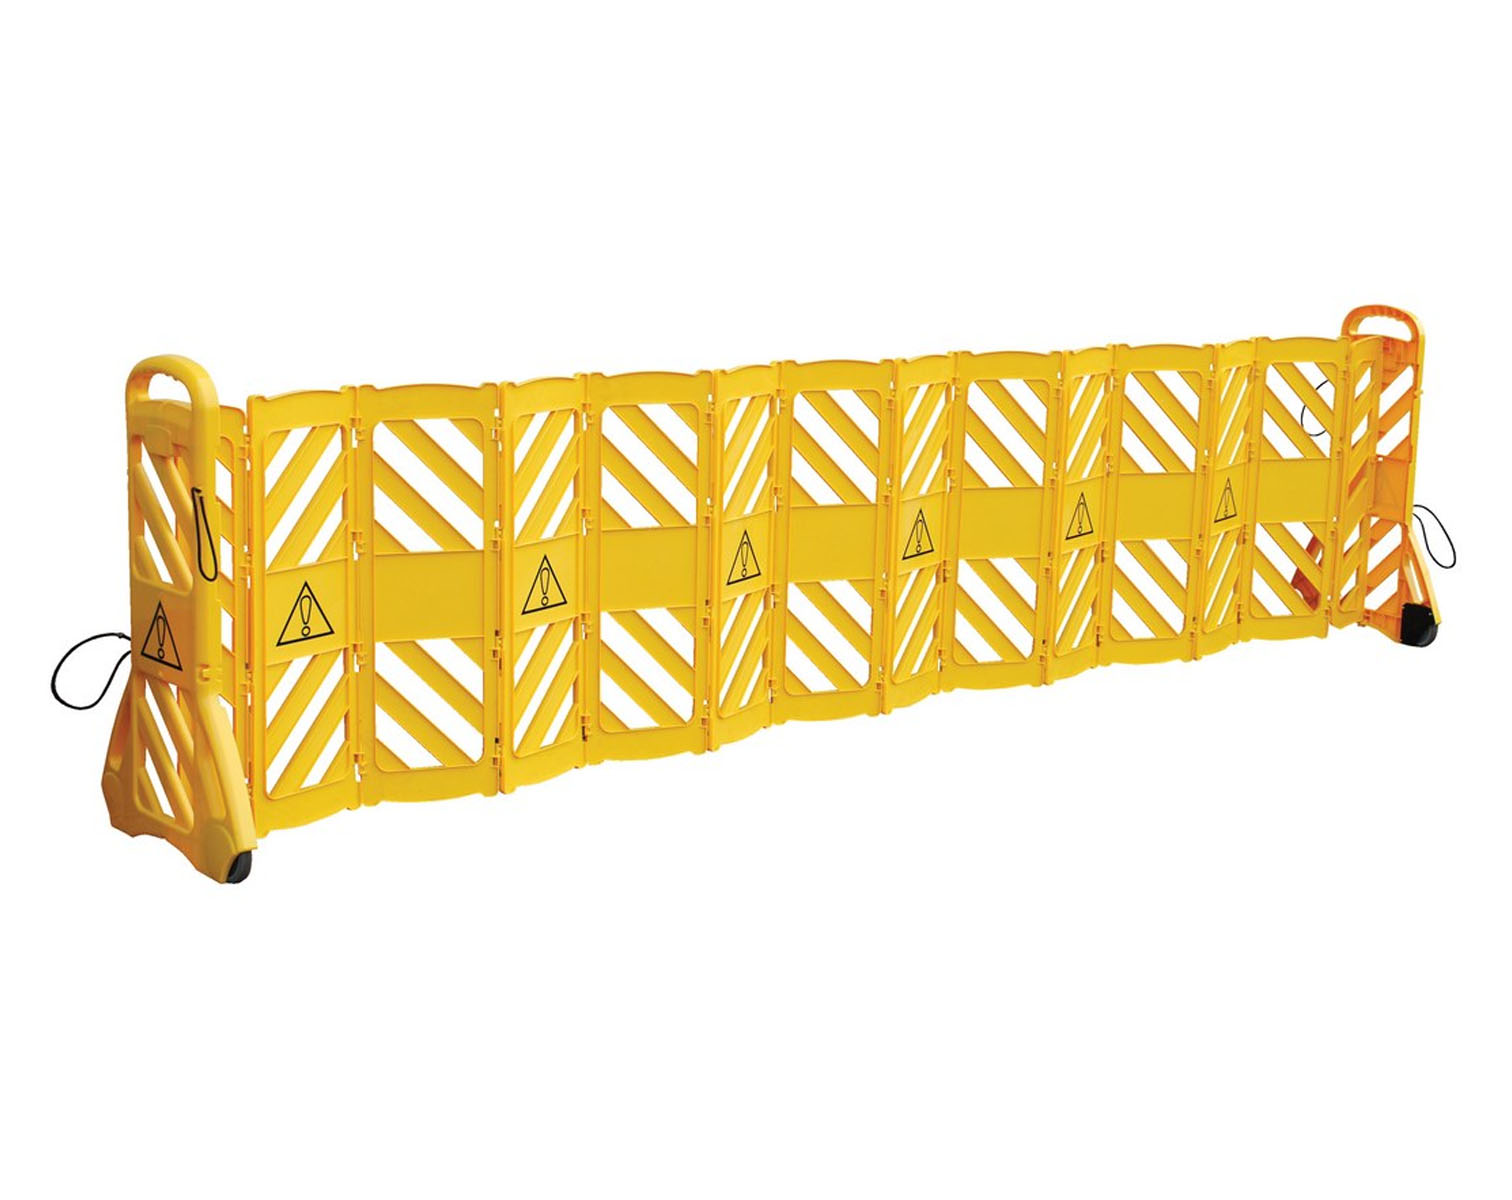 Vestil Mobile Safety Barrier Model No. MSB-138